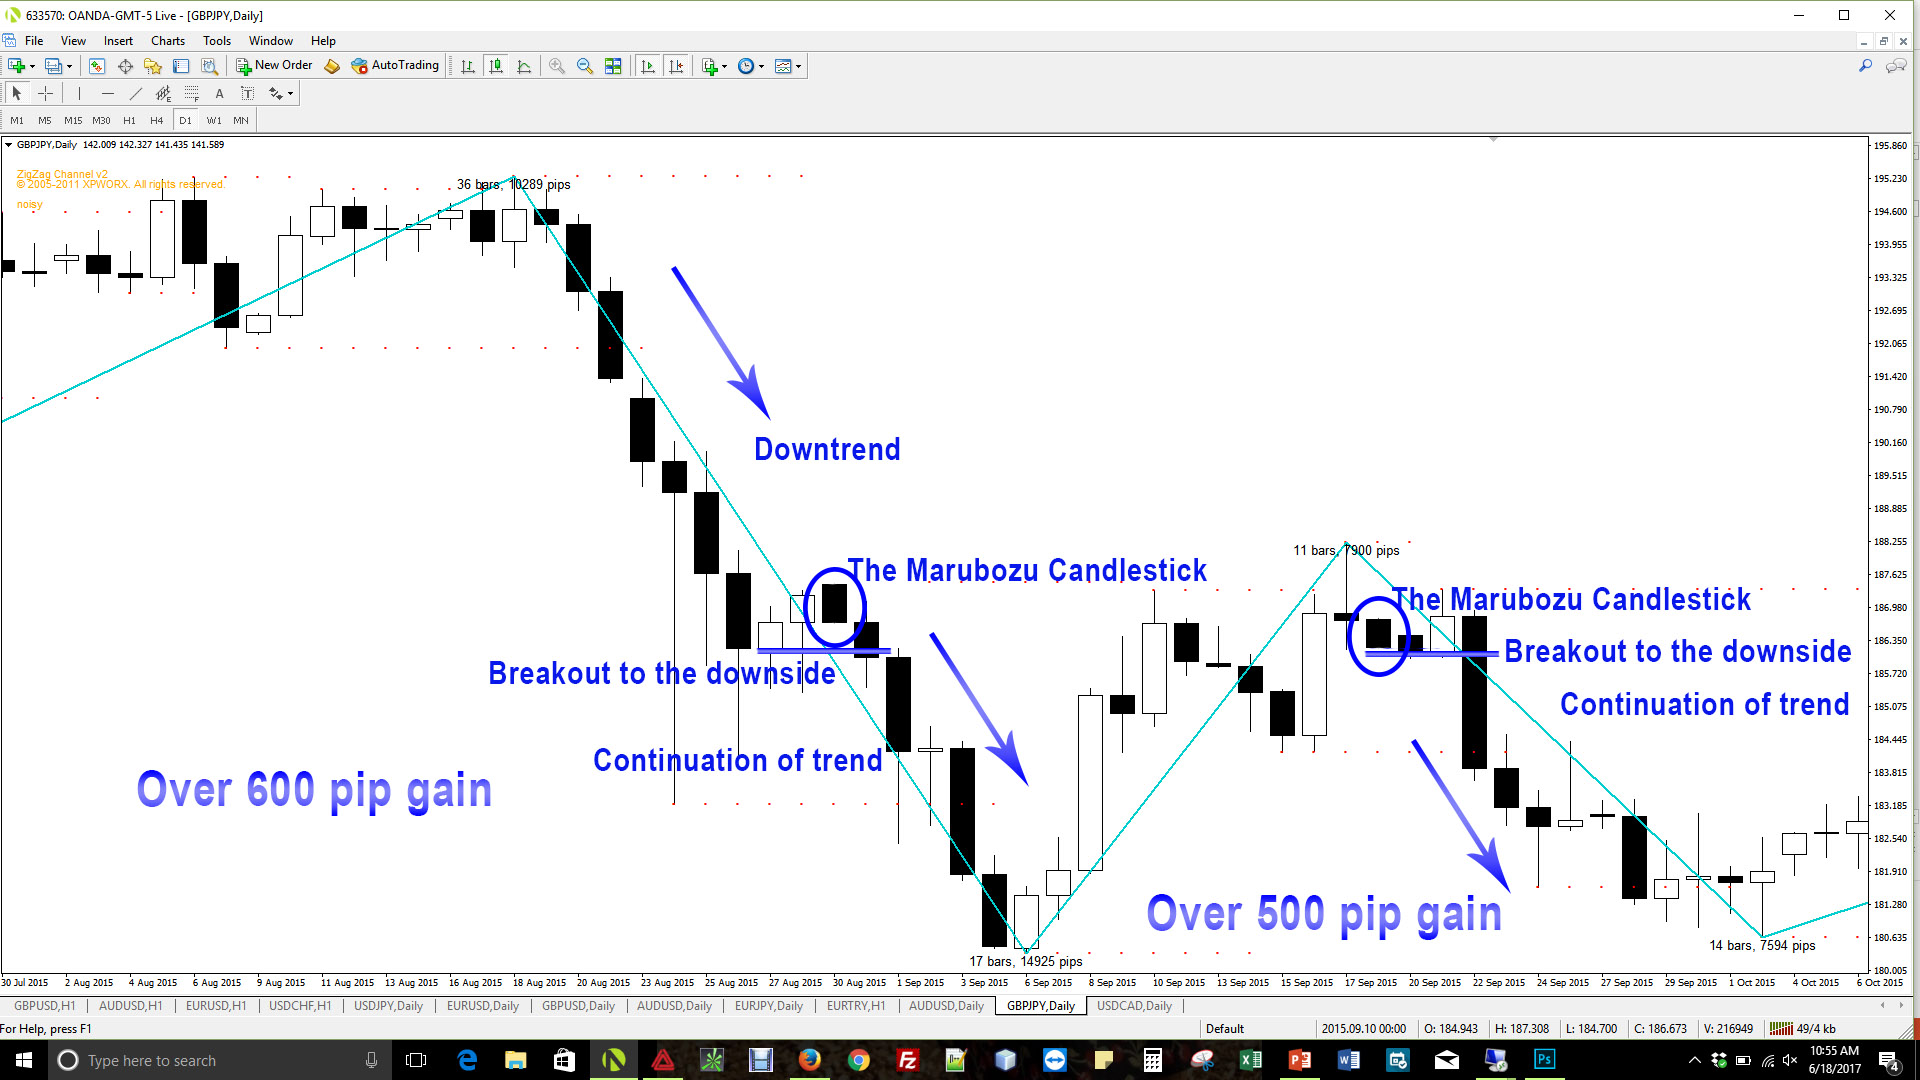 Pure Price Action Series 2 - Candlestick Patterns - The Marubozu